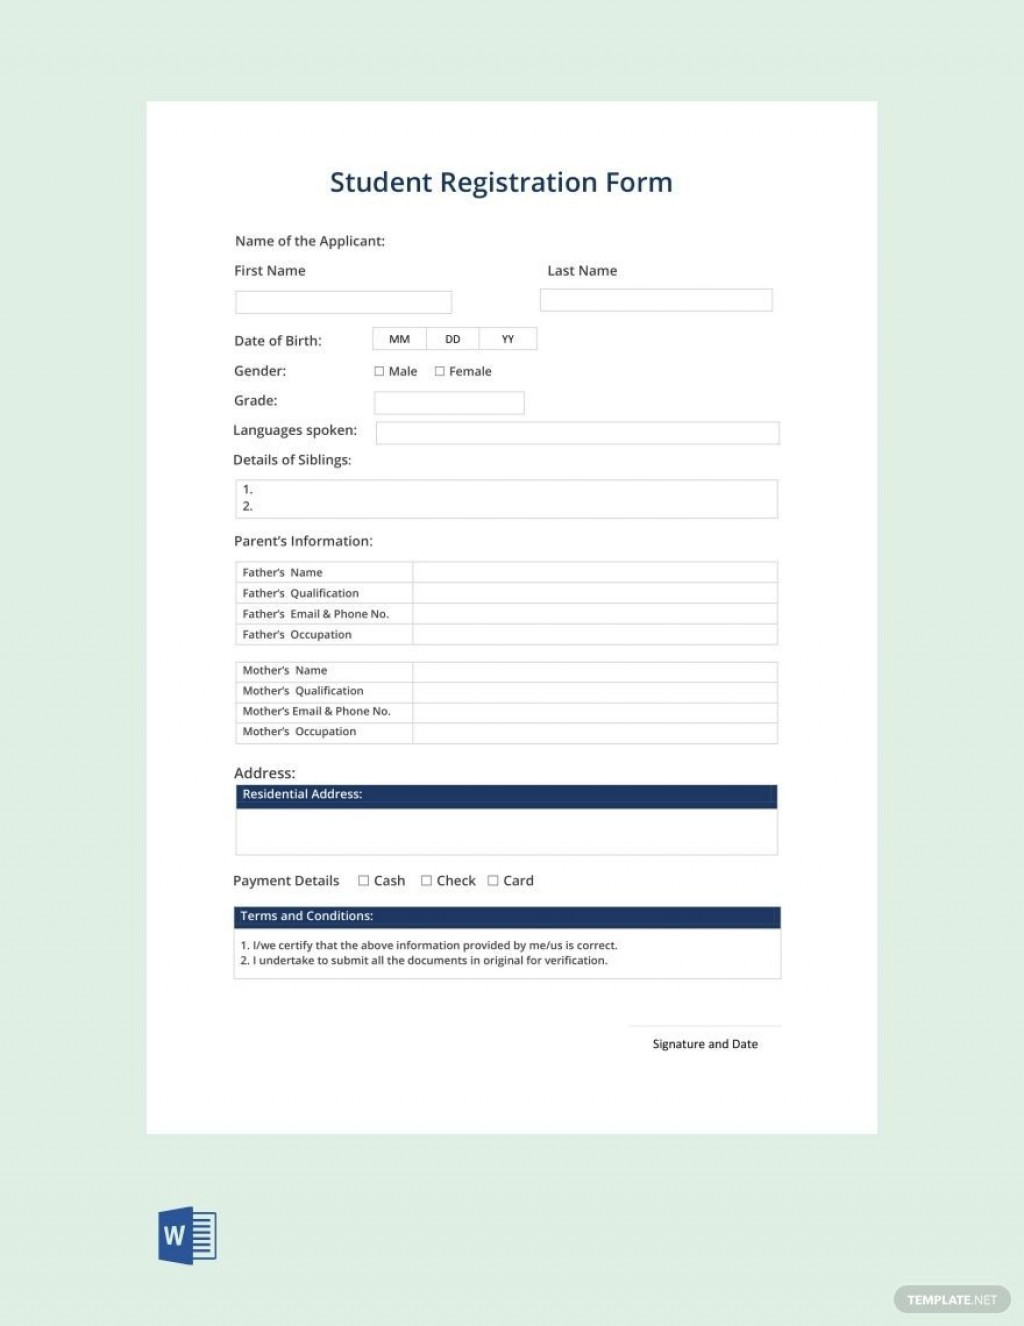 004 Fearsome Registration Form Template Free Download Highest Quality  Bootstrap Student W3layout In PhpLarge